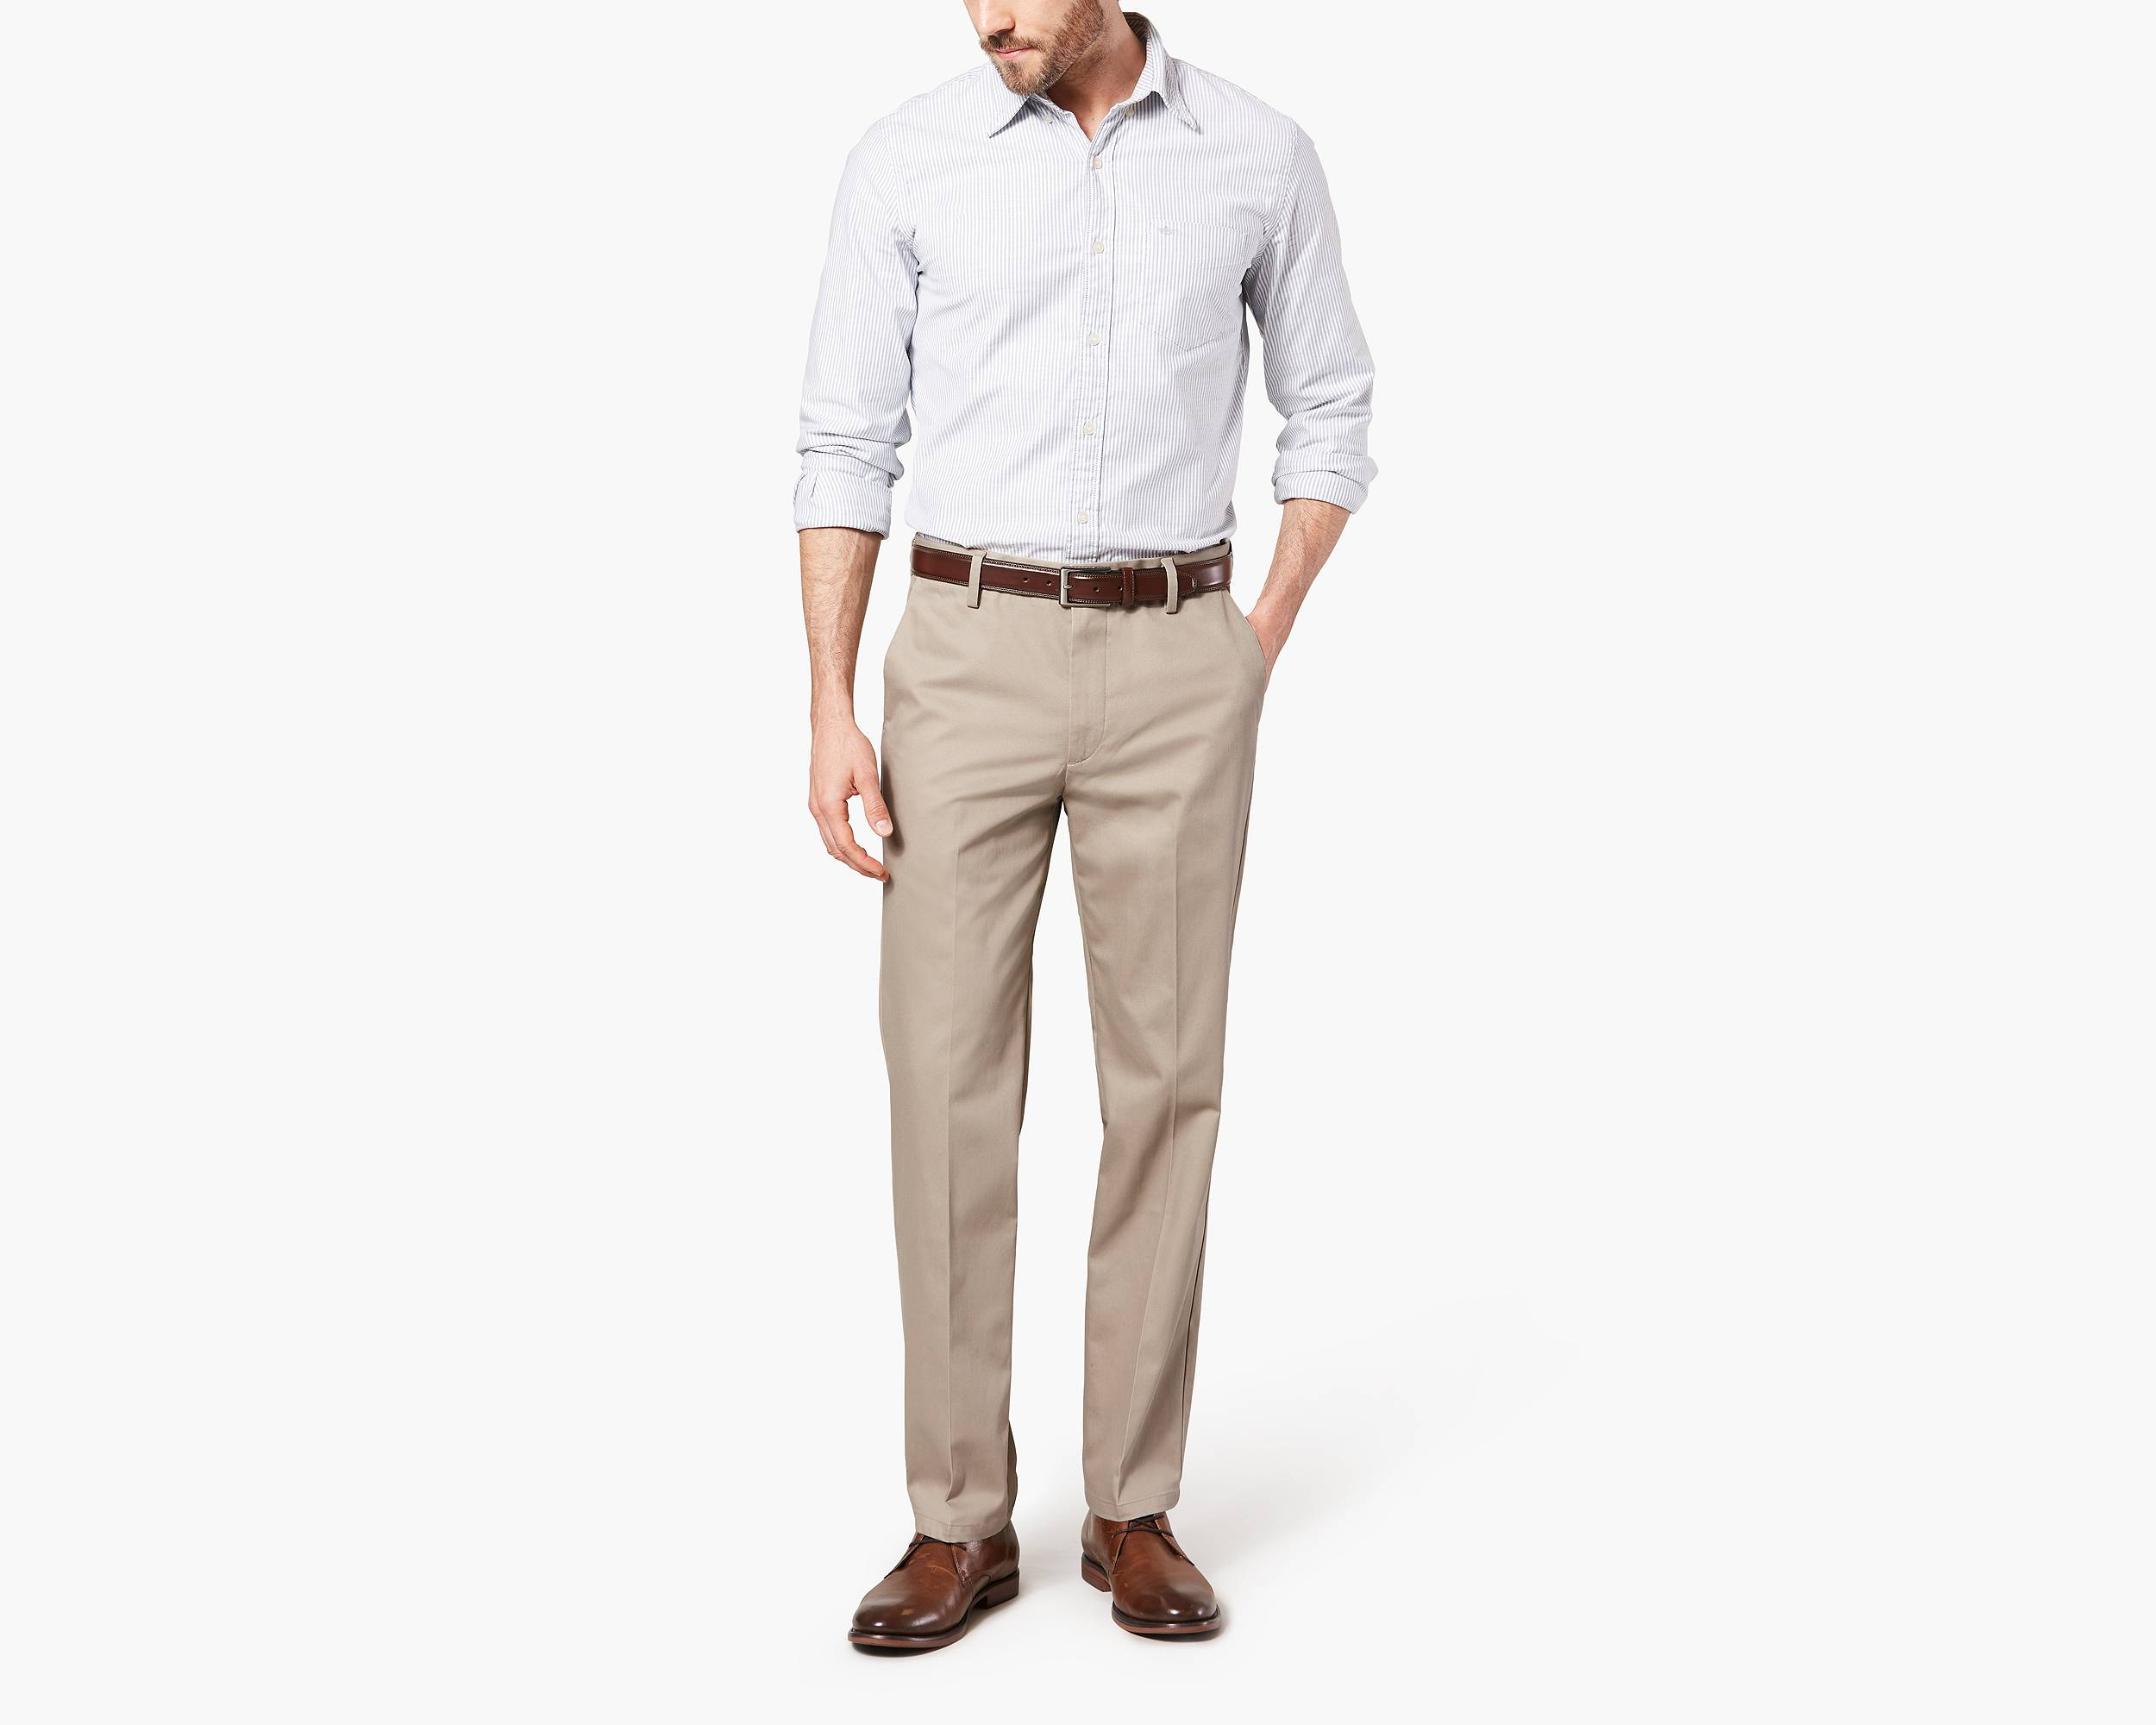 What shoes to wear with khakis men